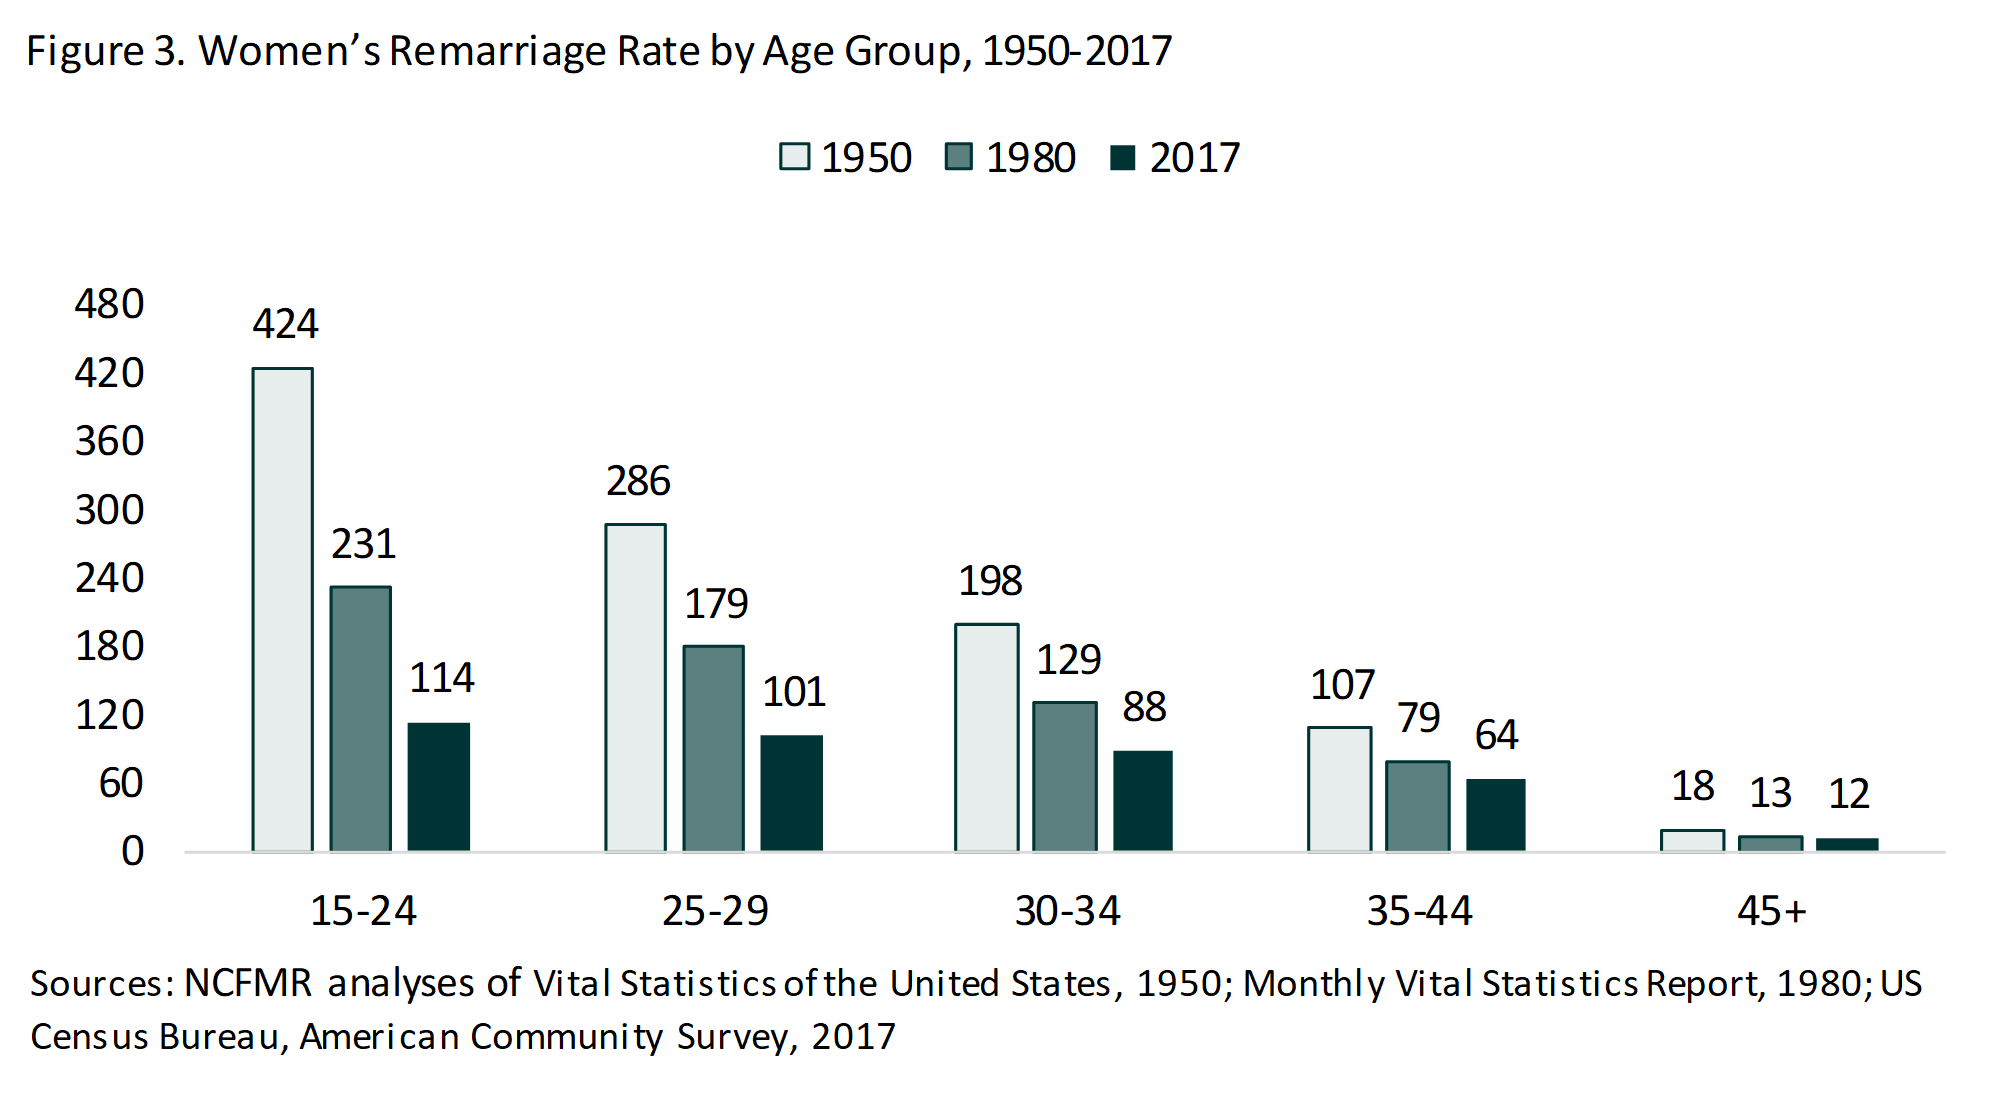 Teal bar chart showing Women's Remarriage Rate by Age Group, 1950-2017